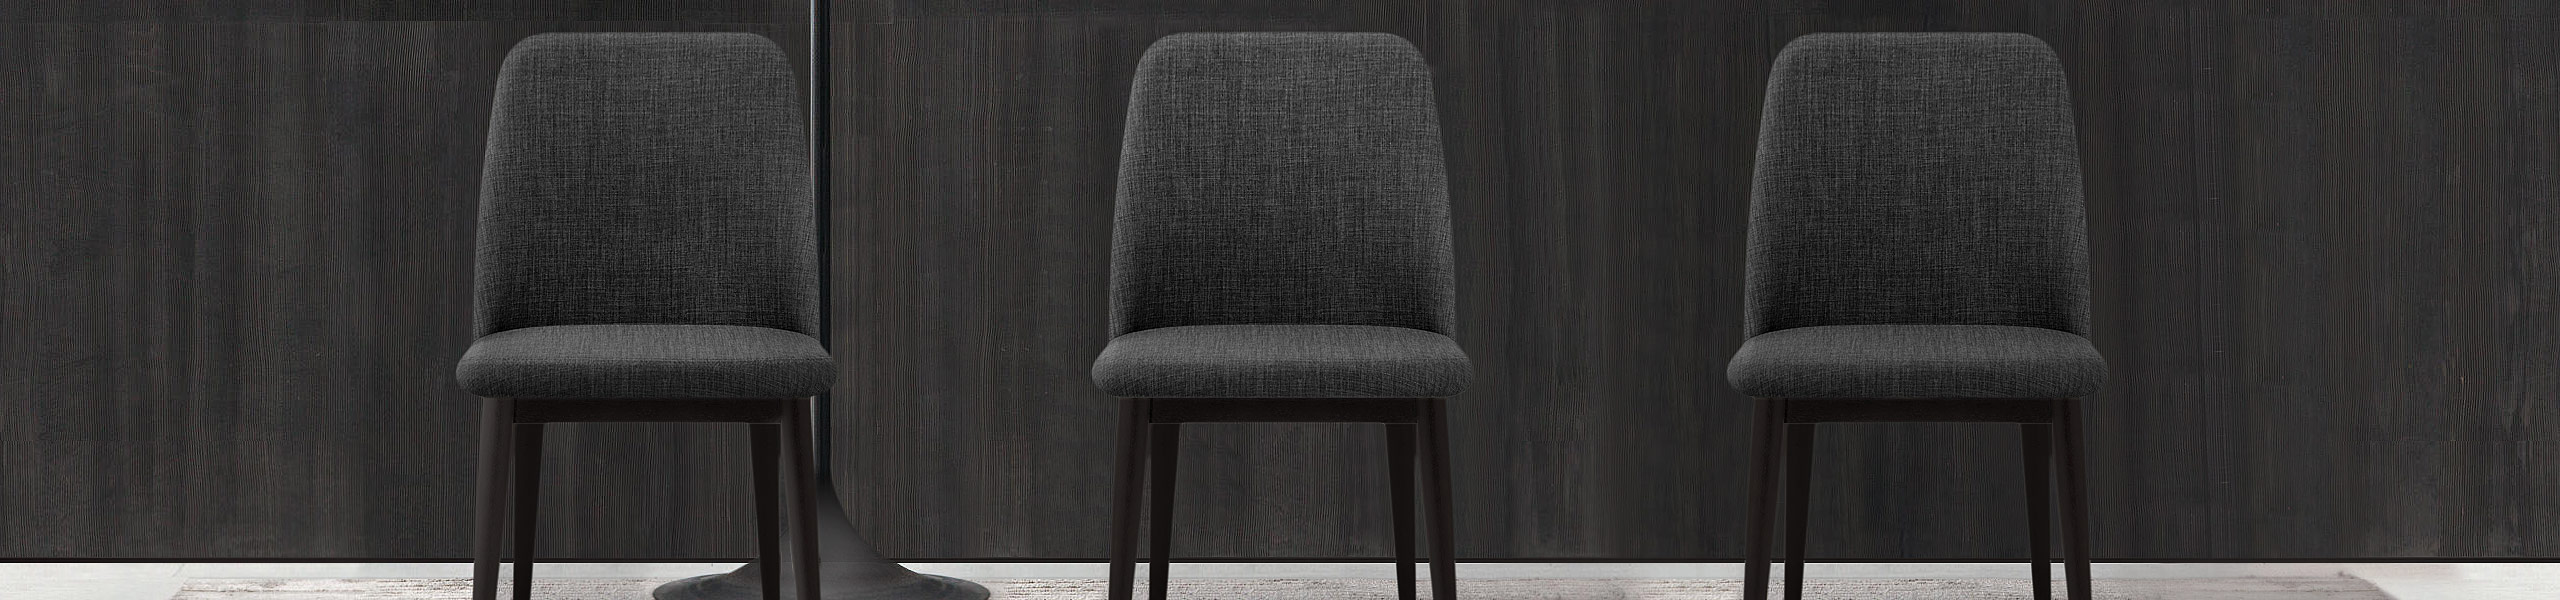 Elwood Walnut Dining Chair Charcoal Fabric Video Banner